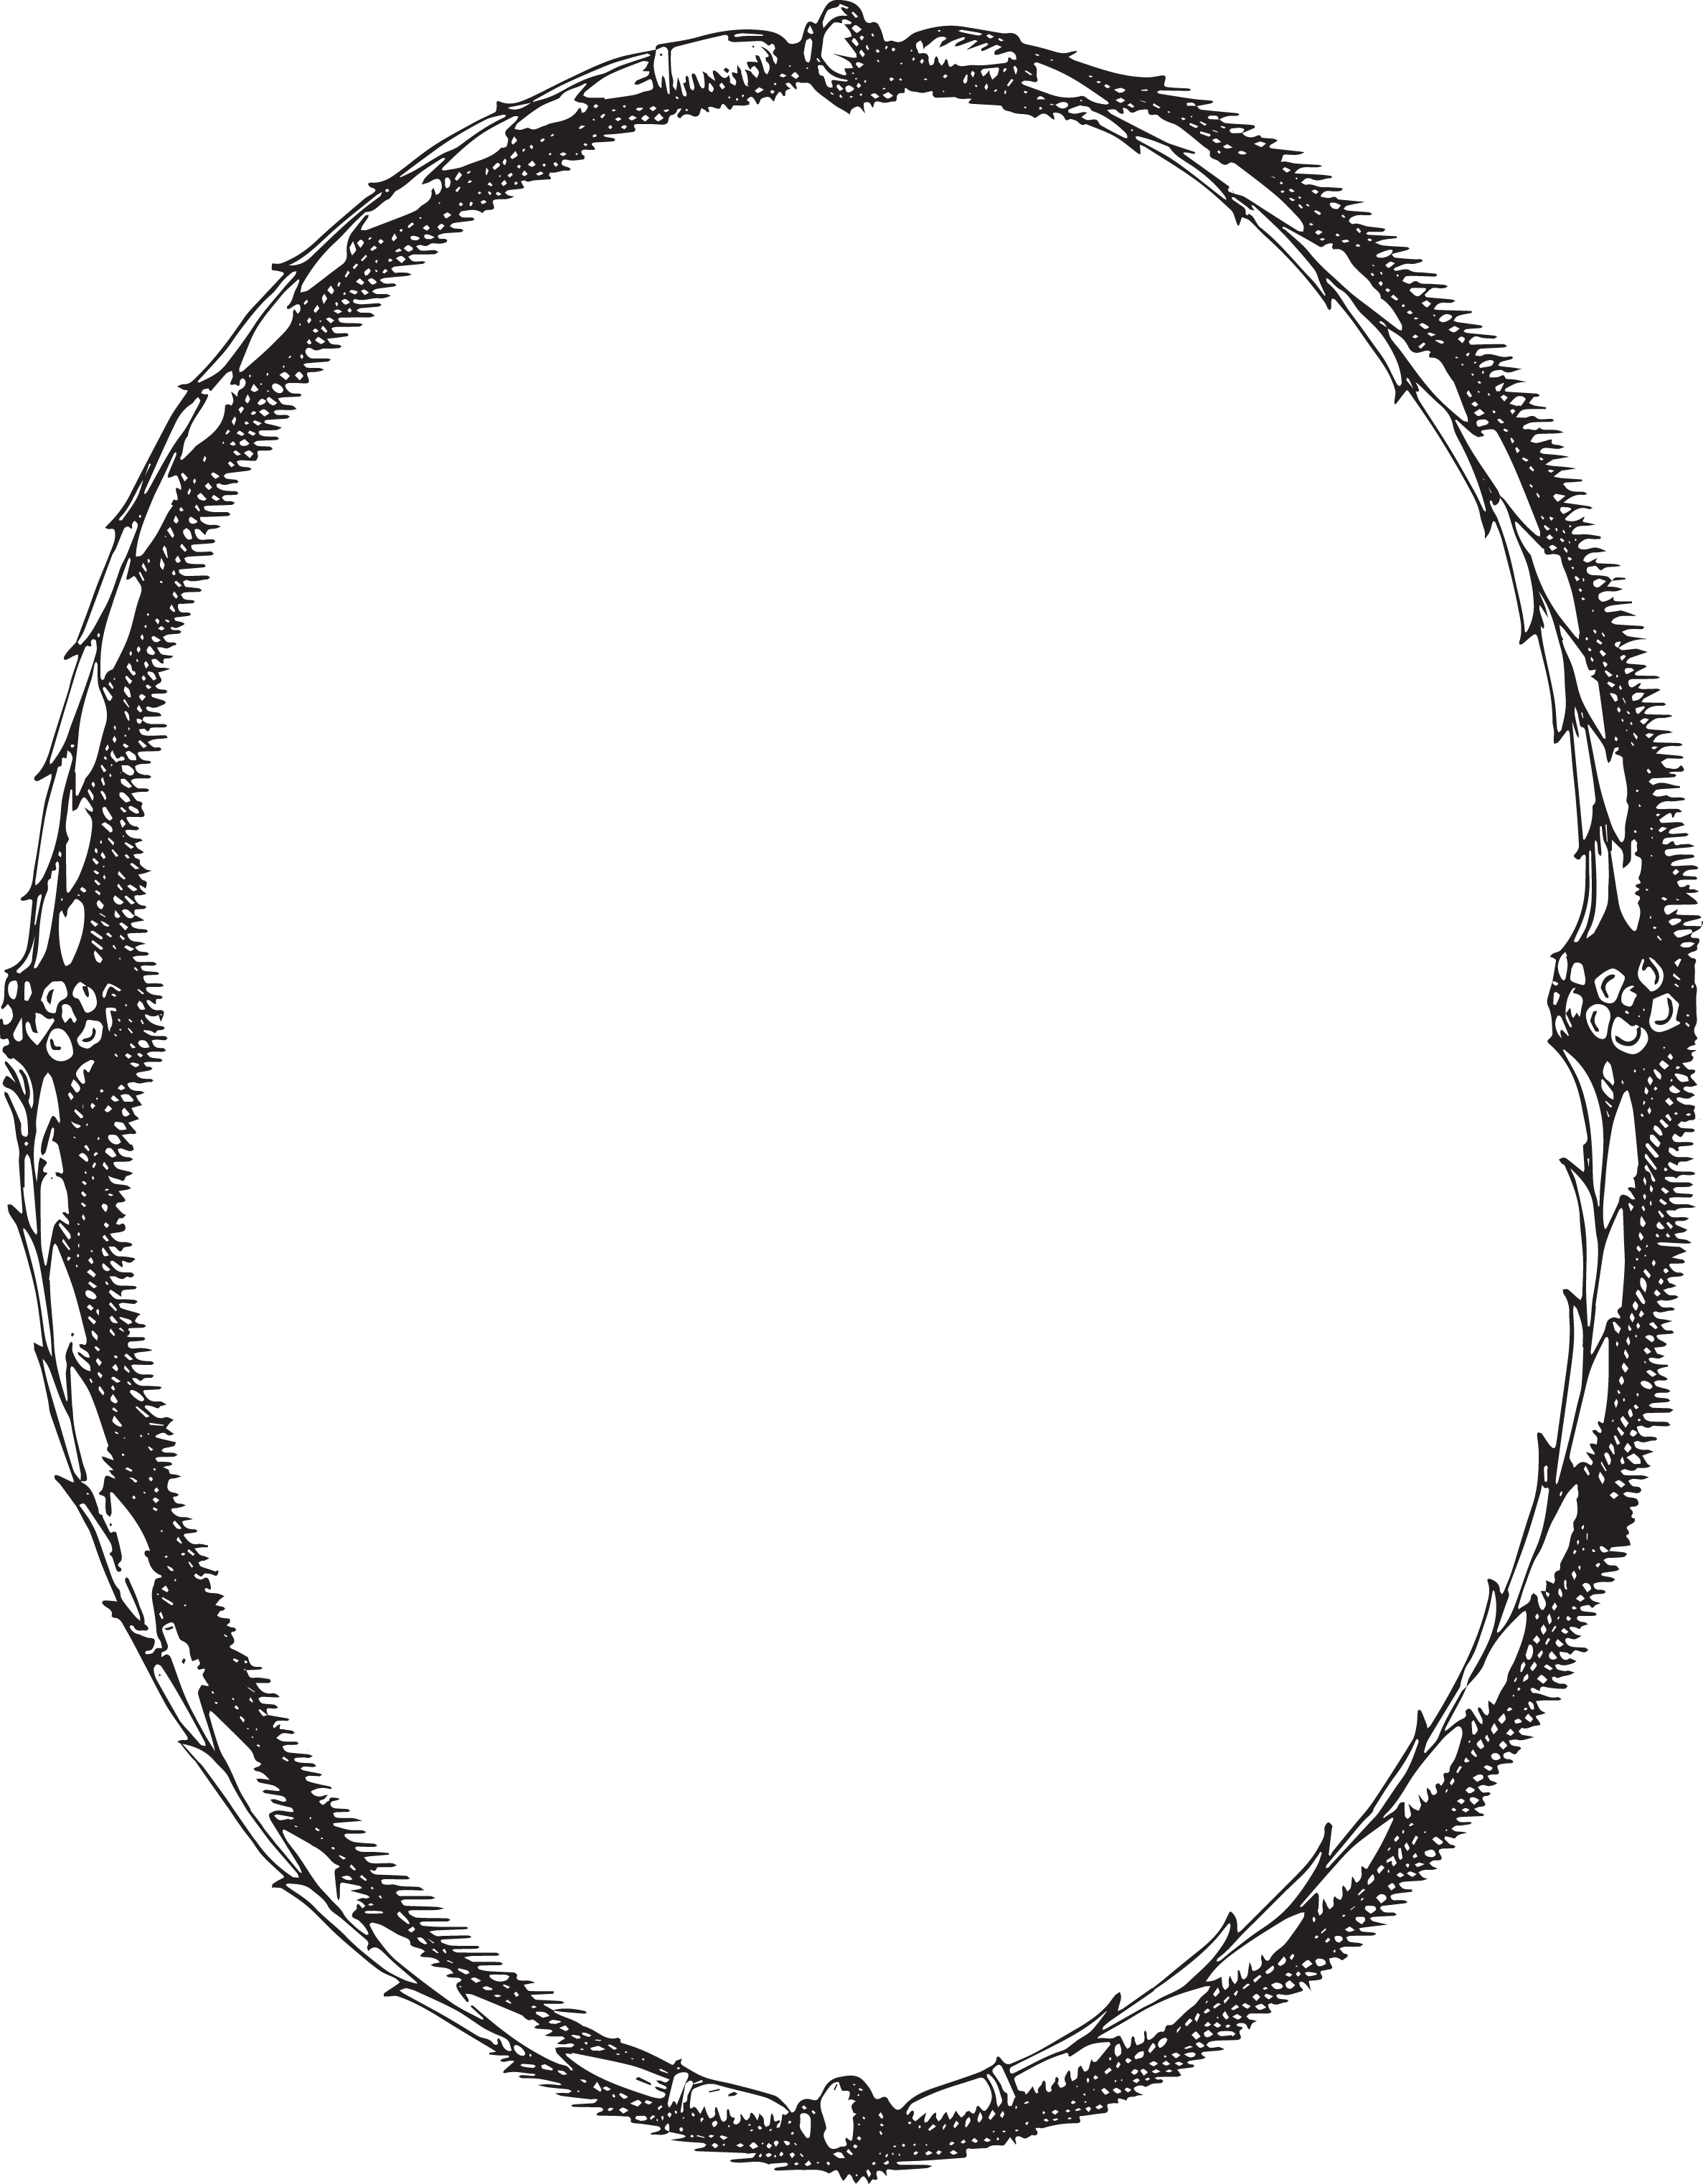 Download Free Transparent Png Image Oval Victorian Frames Clipart